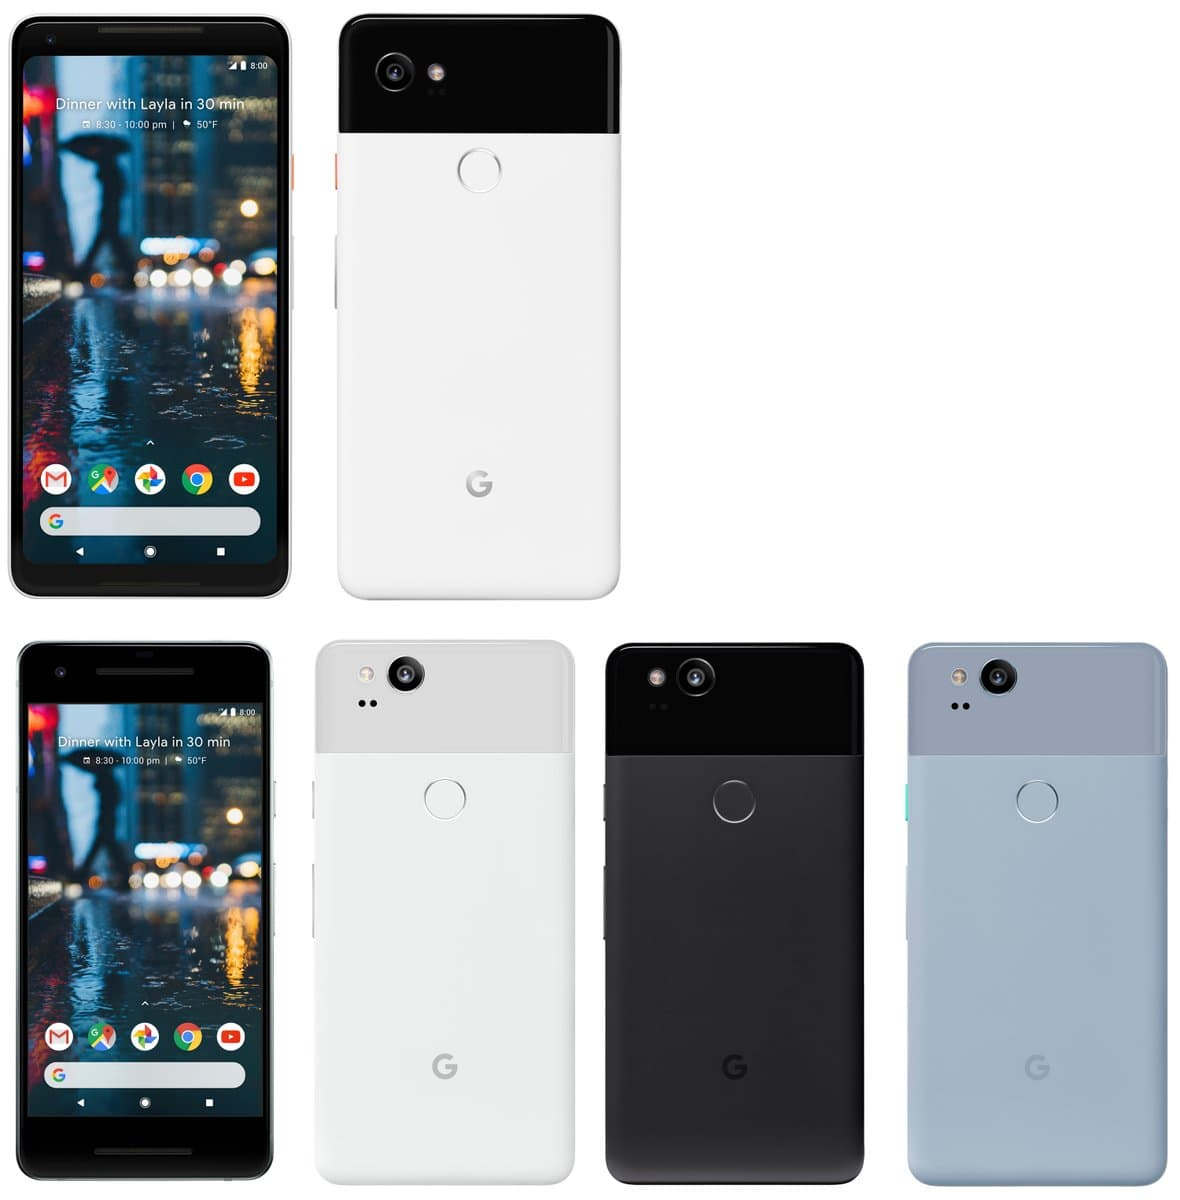 Google Pixel 2 XL Leak Suggests A Bigger Screen With Dual Front-Facing Speakers 1